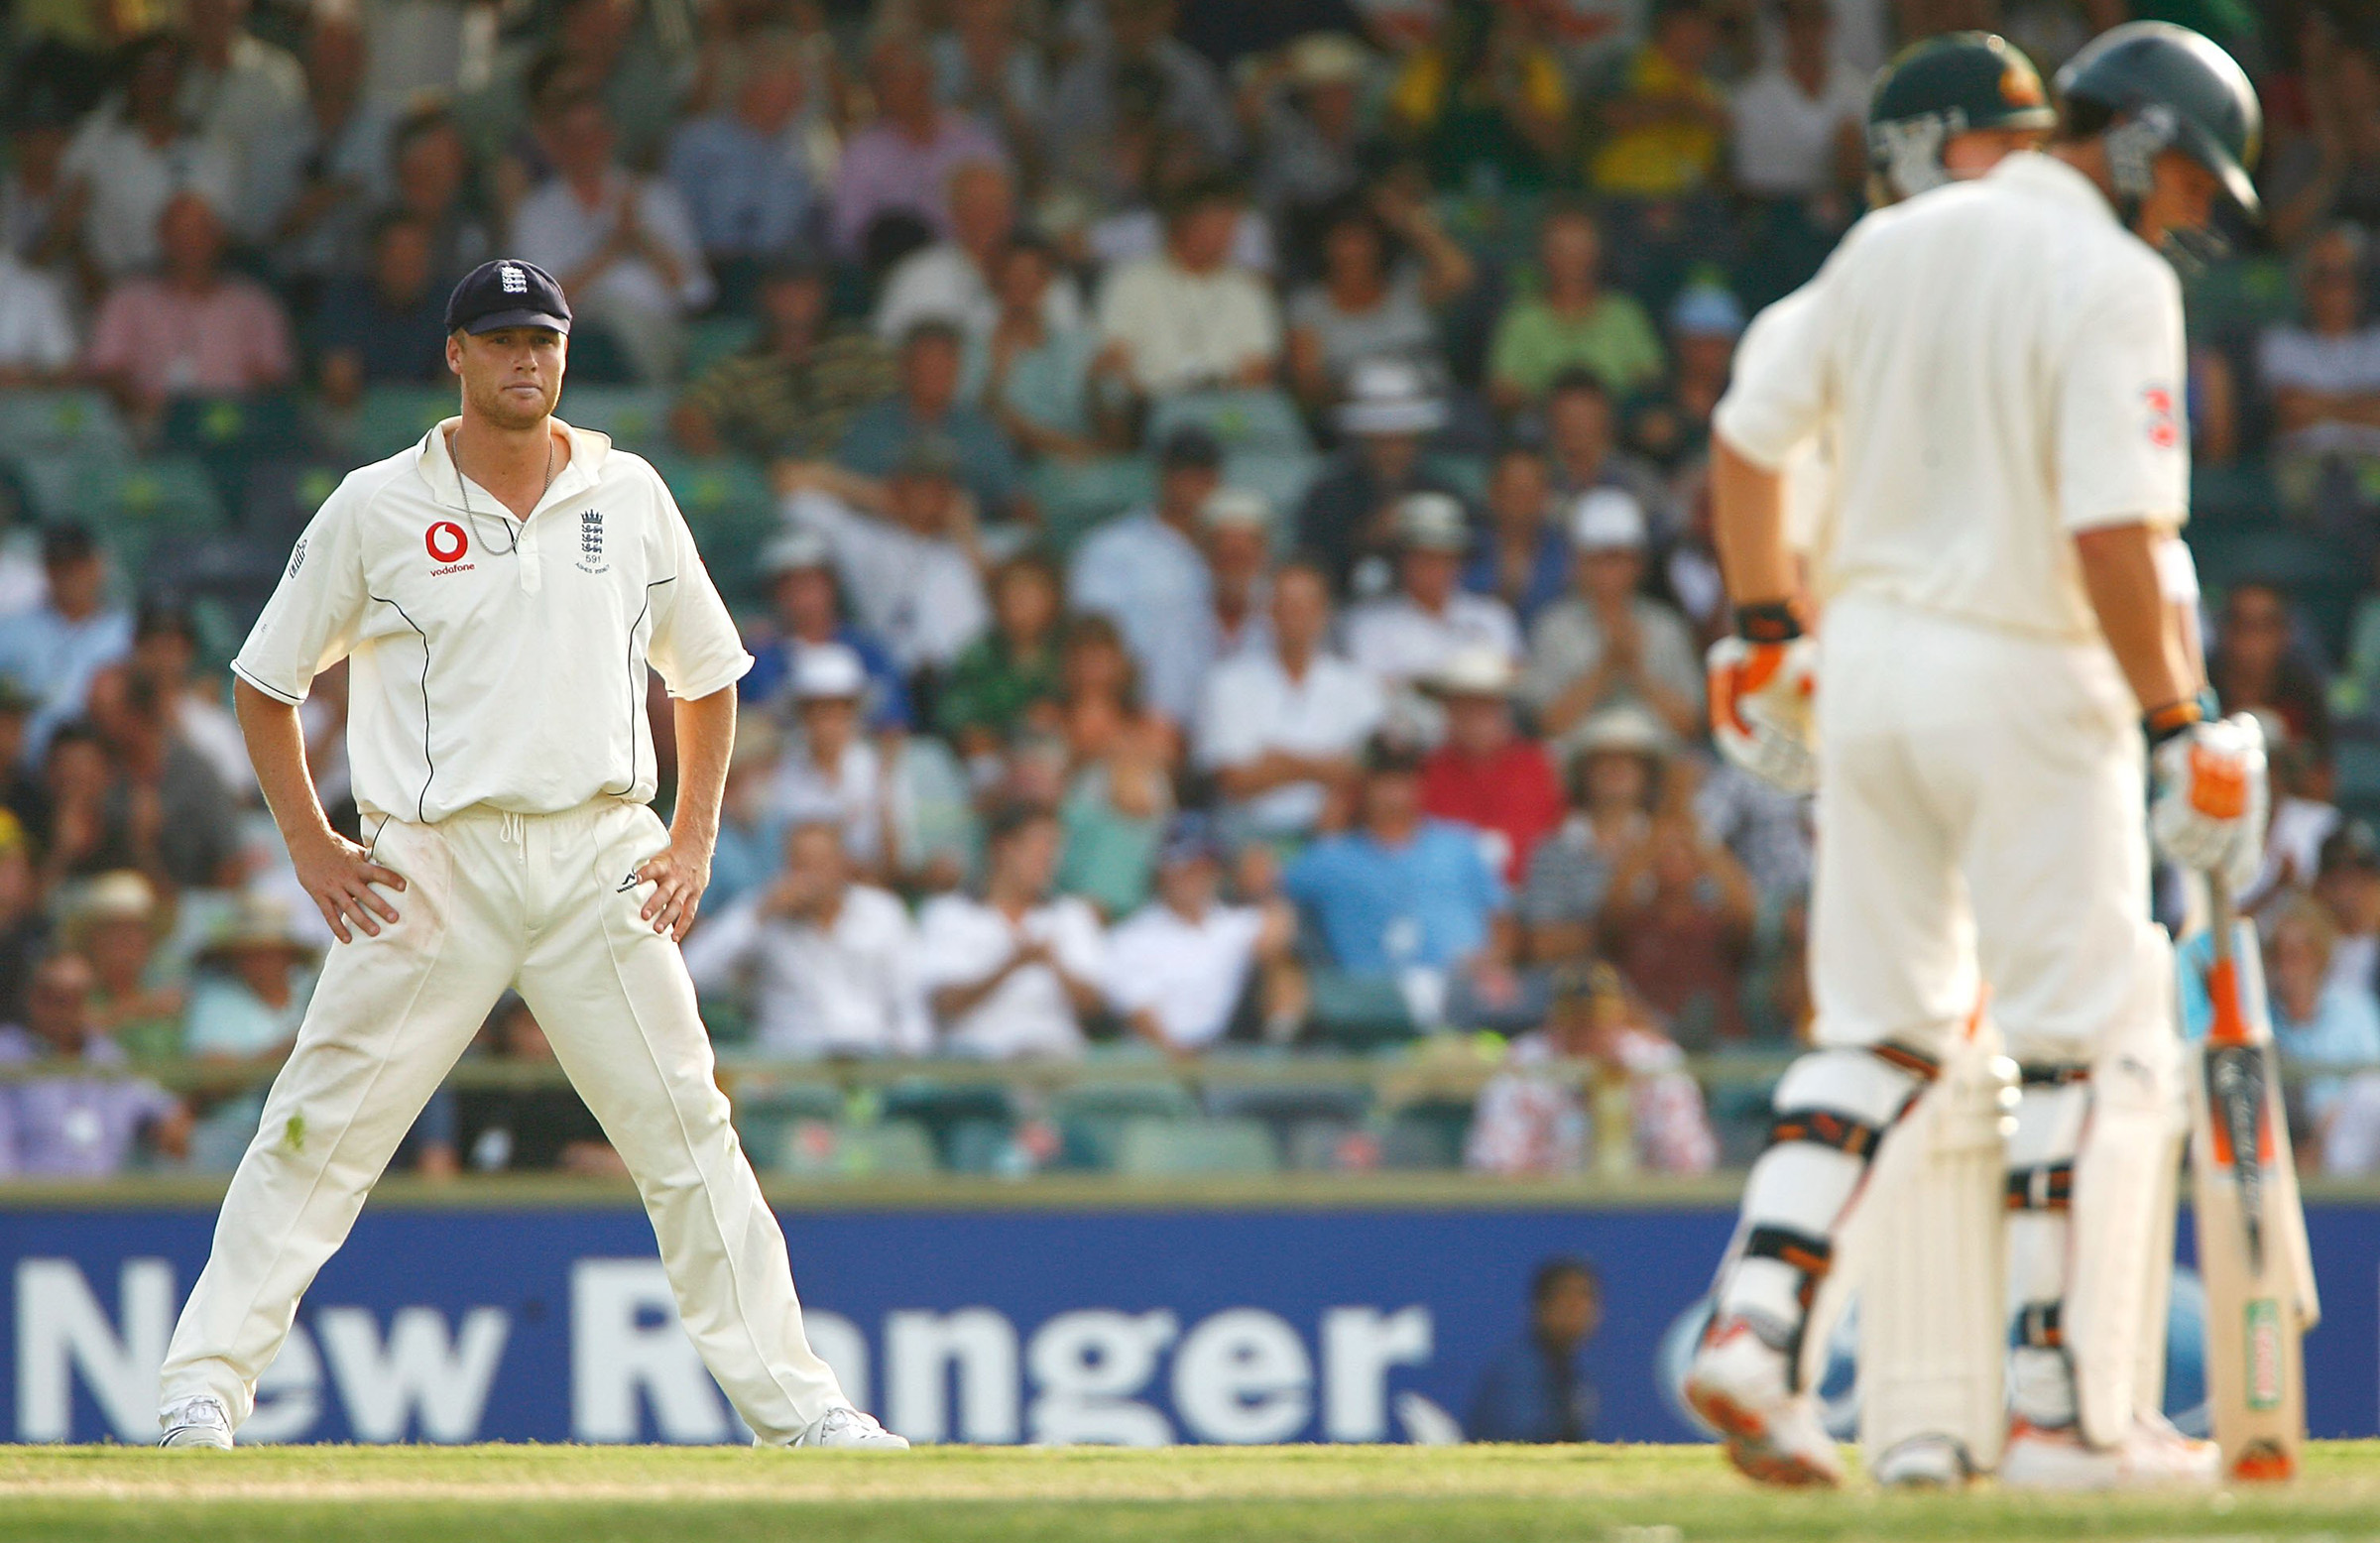 Flintoff, Gilchrist's one-time tormentor, had no answer in Perth // Getty